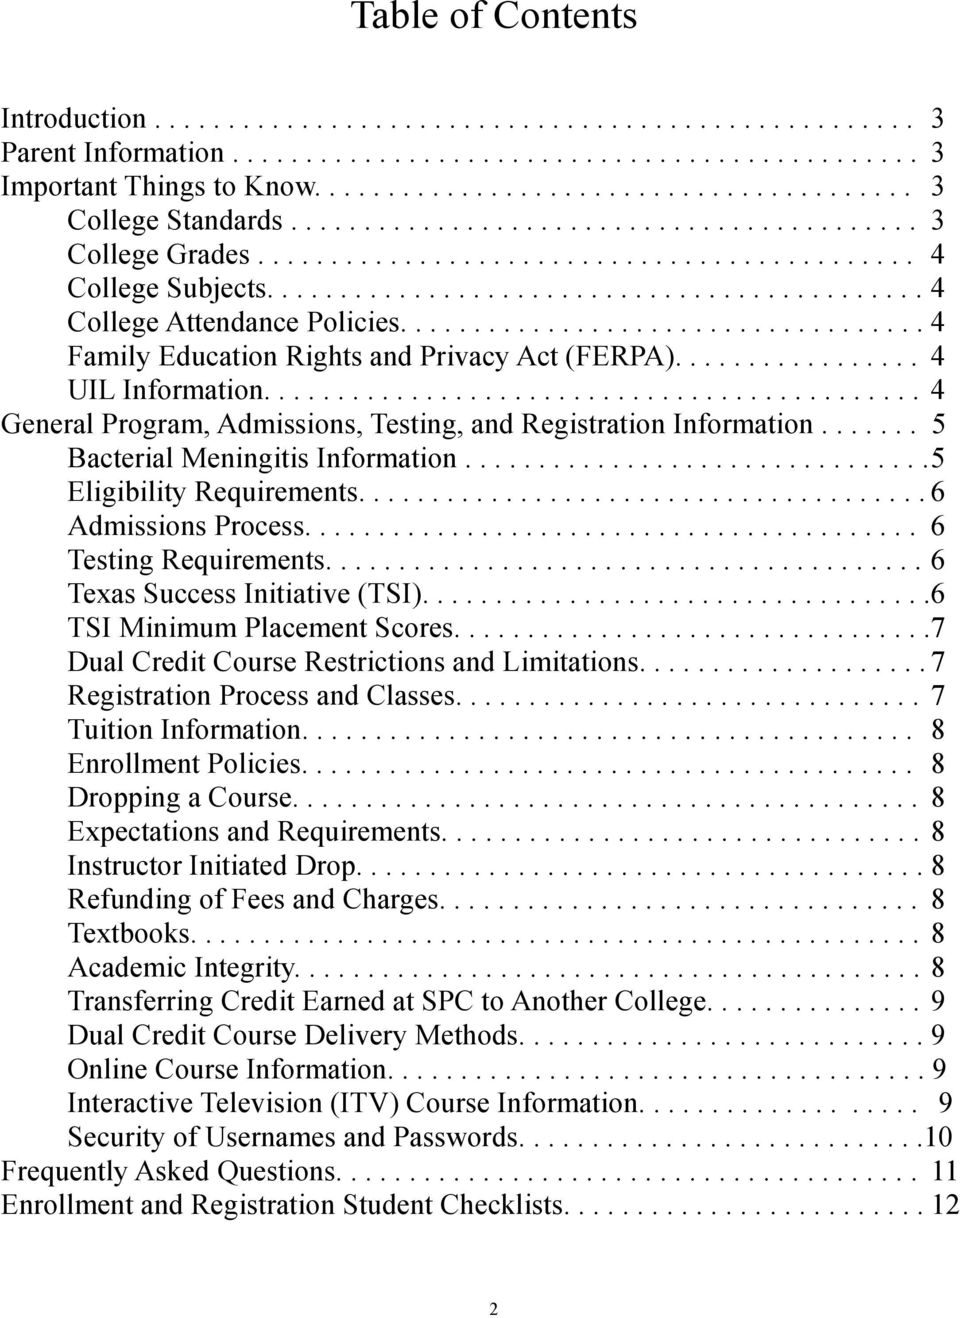 ................................... 4 Family Education Rights and Privacy Act (FERPA)................. 4 UIL Information............................................. 4 General Program, Admissions, Testing, and Registration Information.